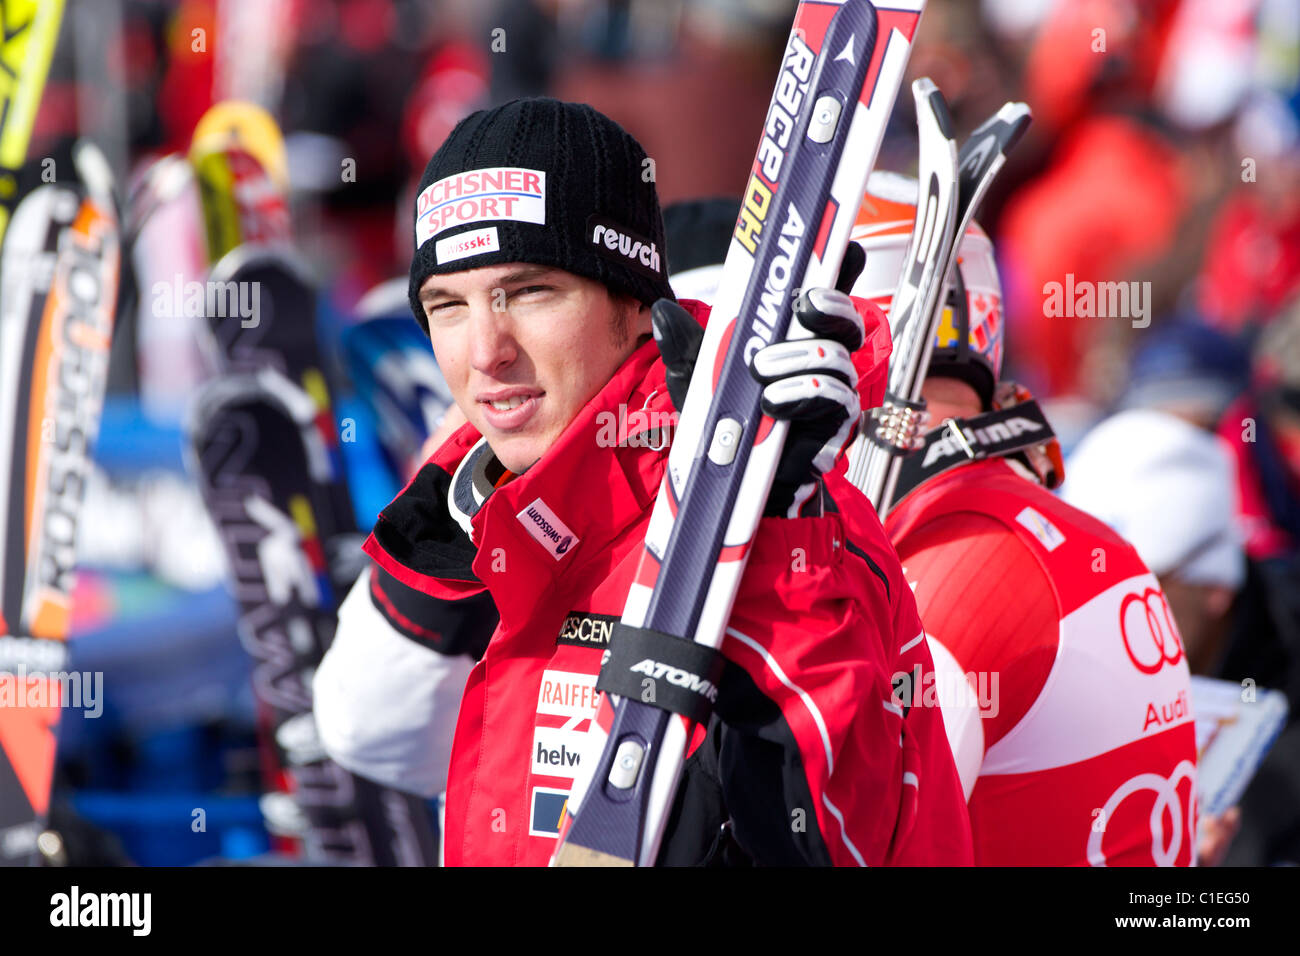 Carlo Janka waiting for his turn to go to the podium. 1st place in downhill in Beaver Creek. - Stock Image